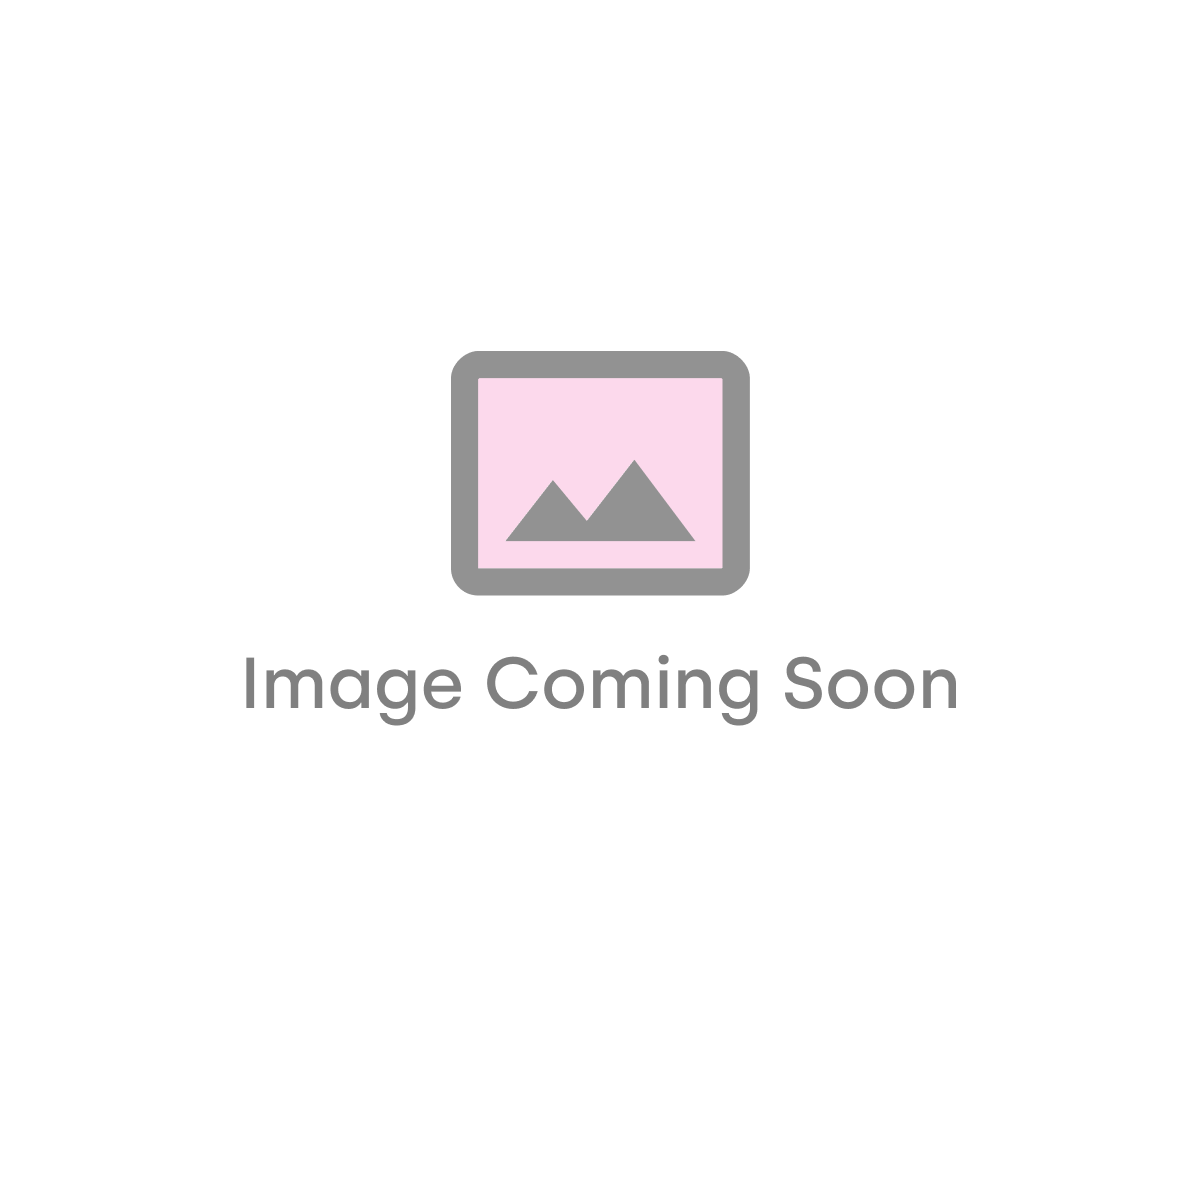 Merlyn Vivid Boost 760mm Pivot Shower Door (13757)